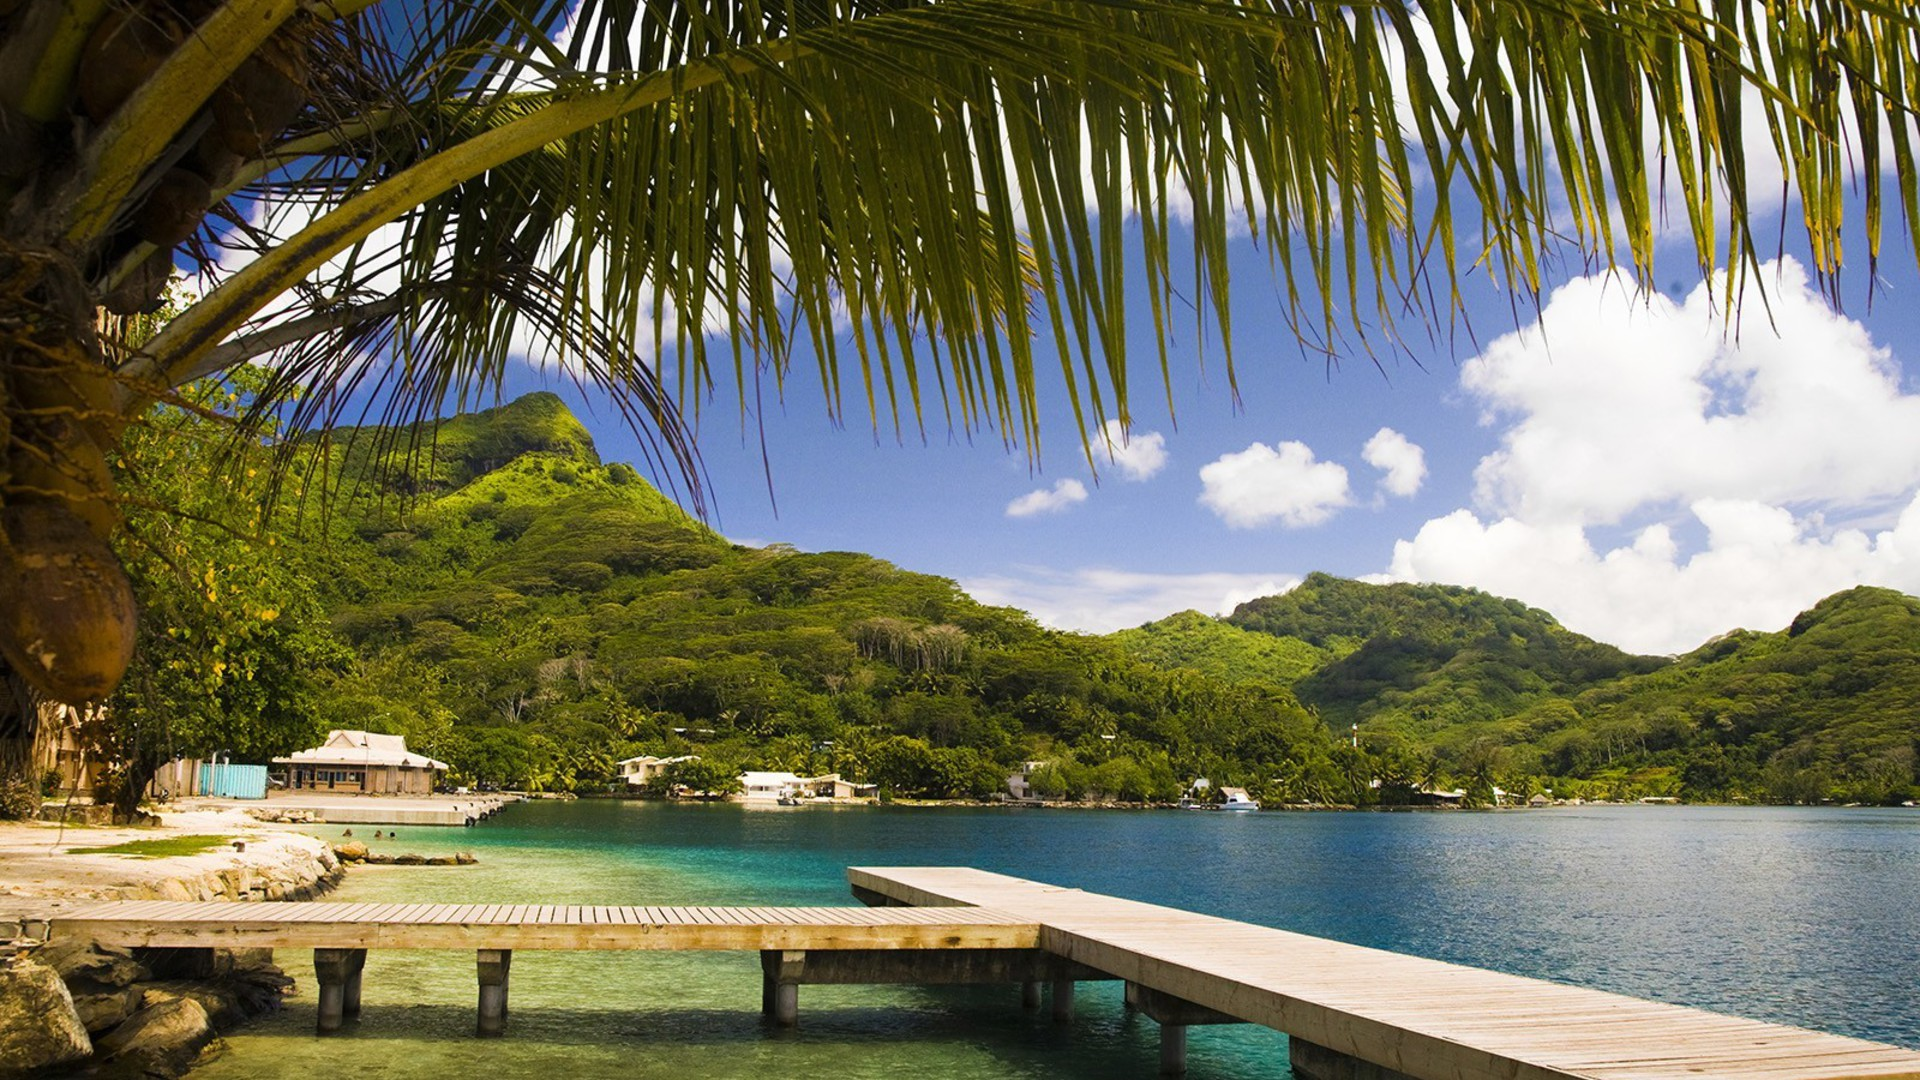 Nature French Polynesia Tahiti Wallpaper Allwallpaper In